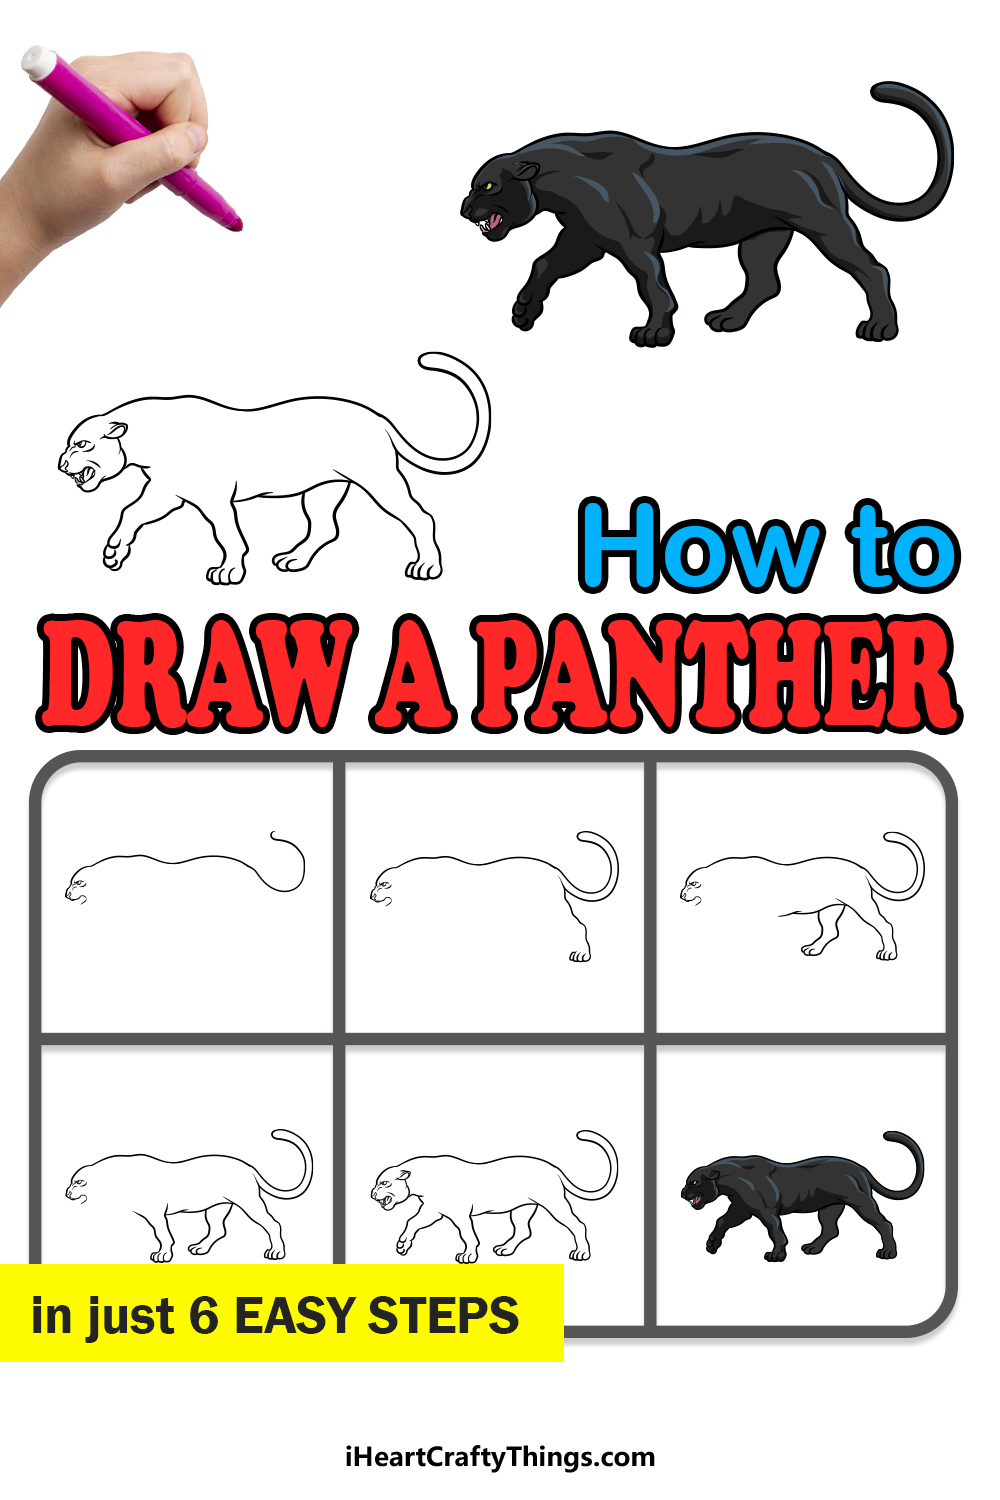 how to draw a panther in 6 easy steps